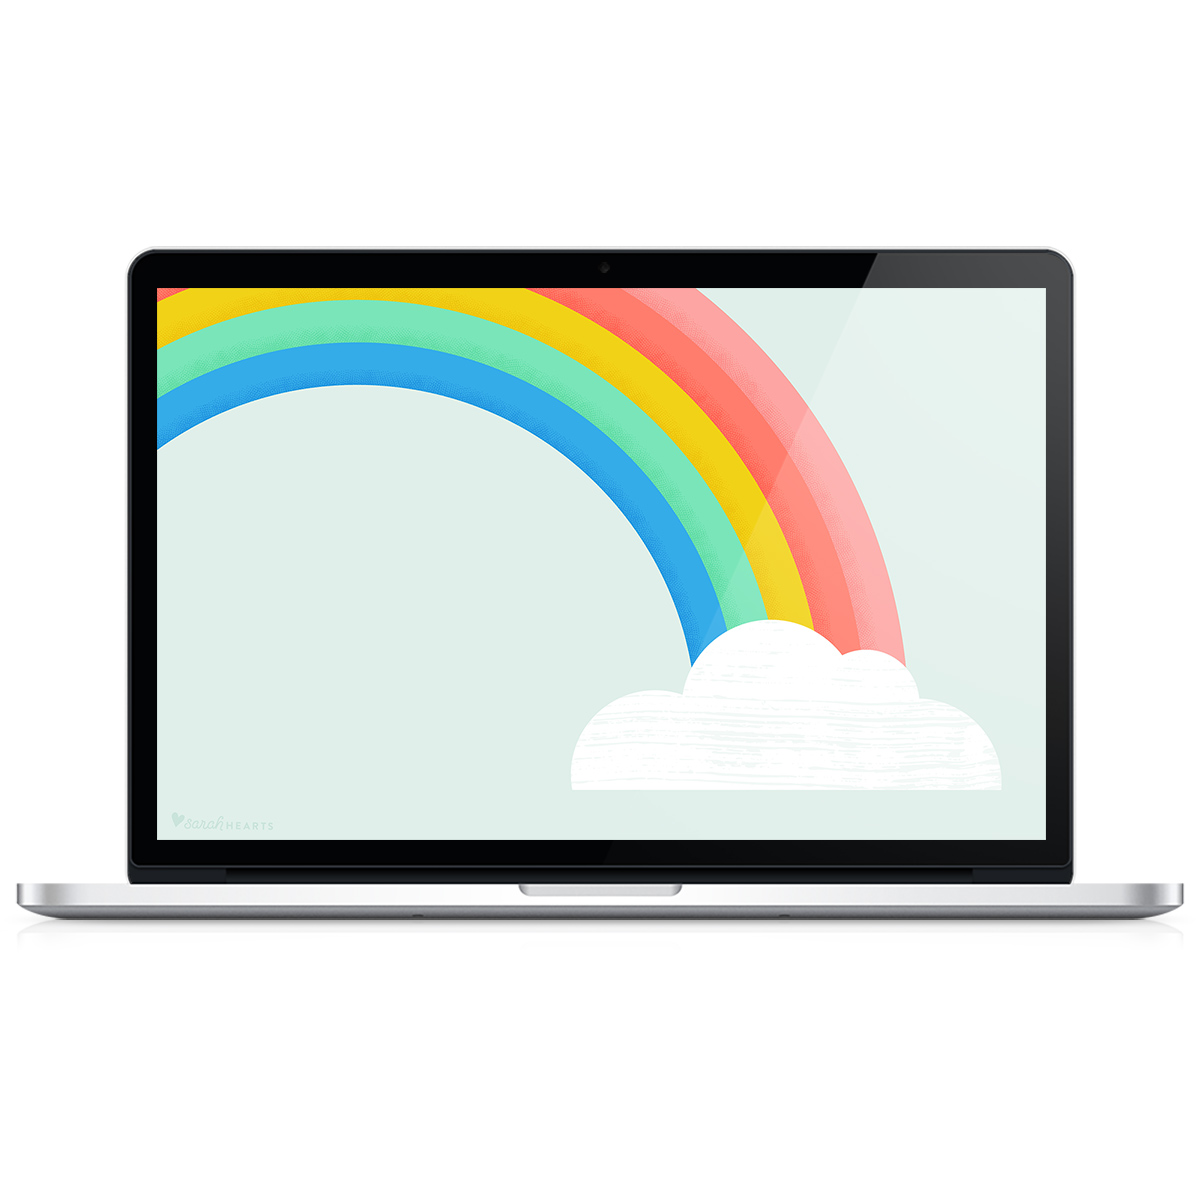 Add some color to your computer, phone or tablet with this free cheerful rainbow wallpaper!